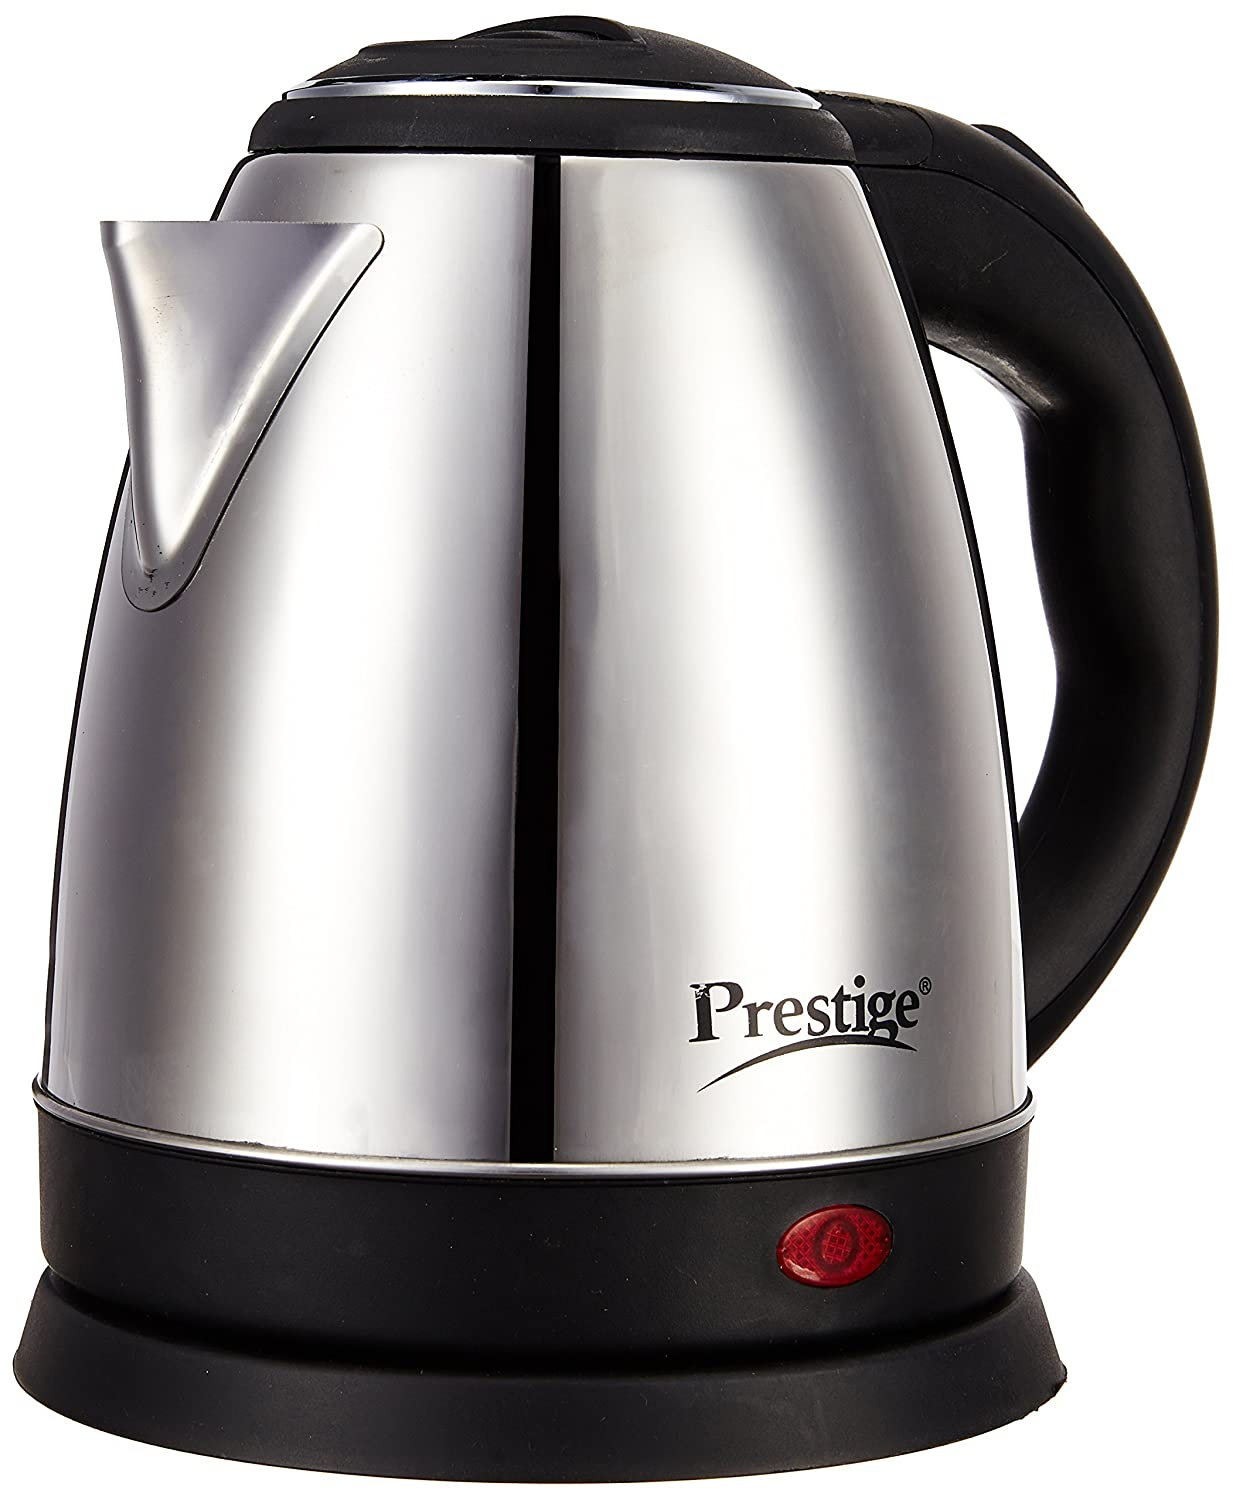 Prestige Electric Kettle PKOSS - 1500watts